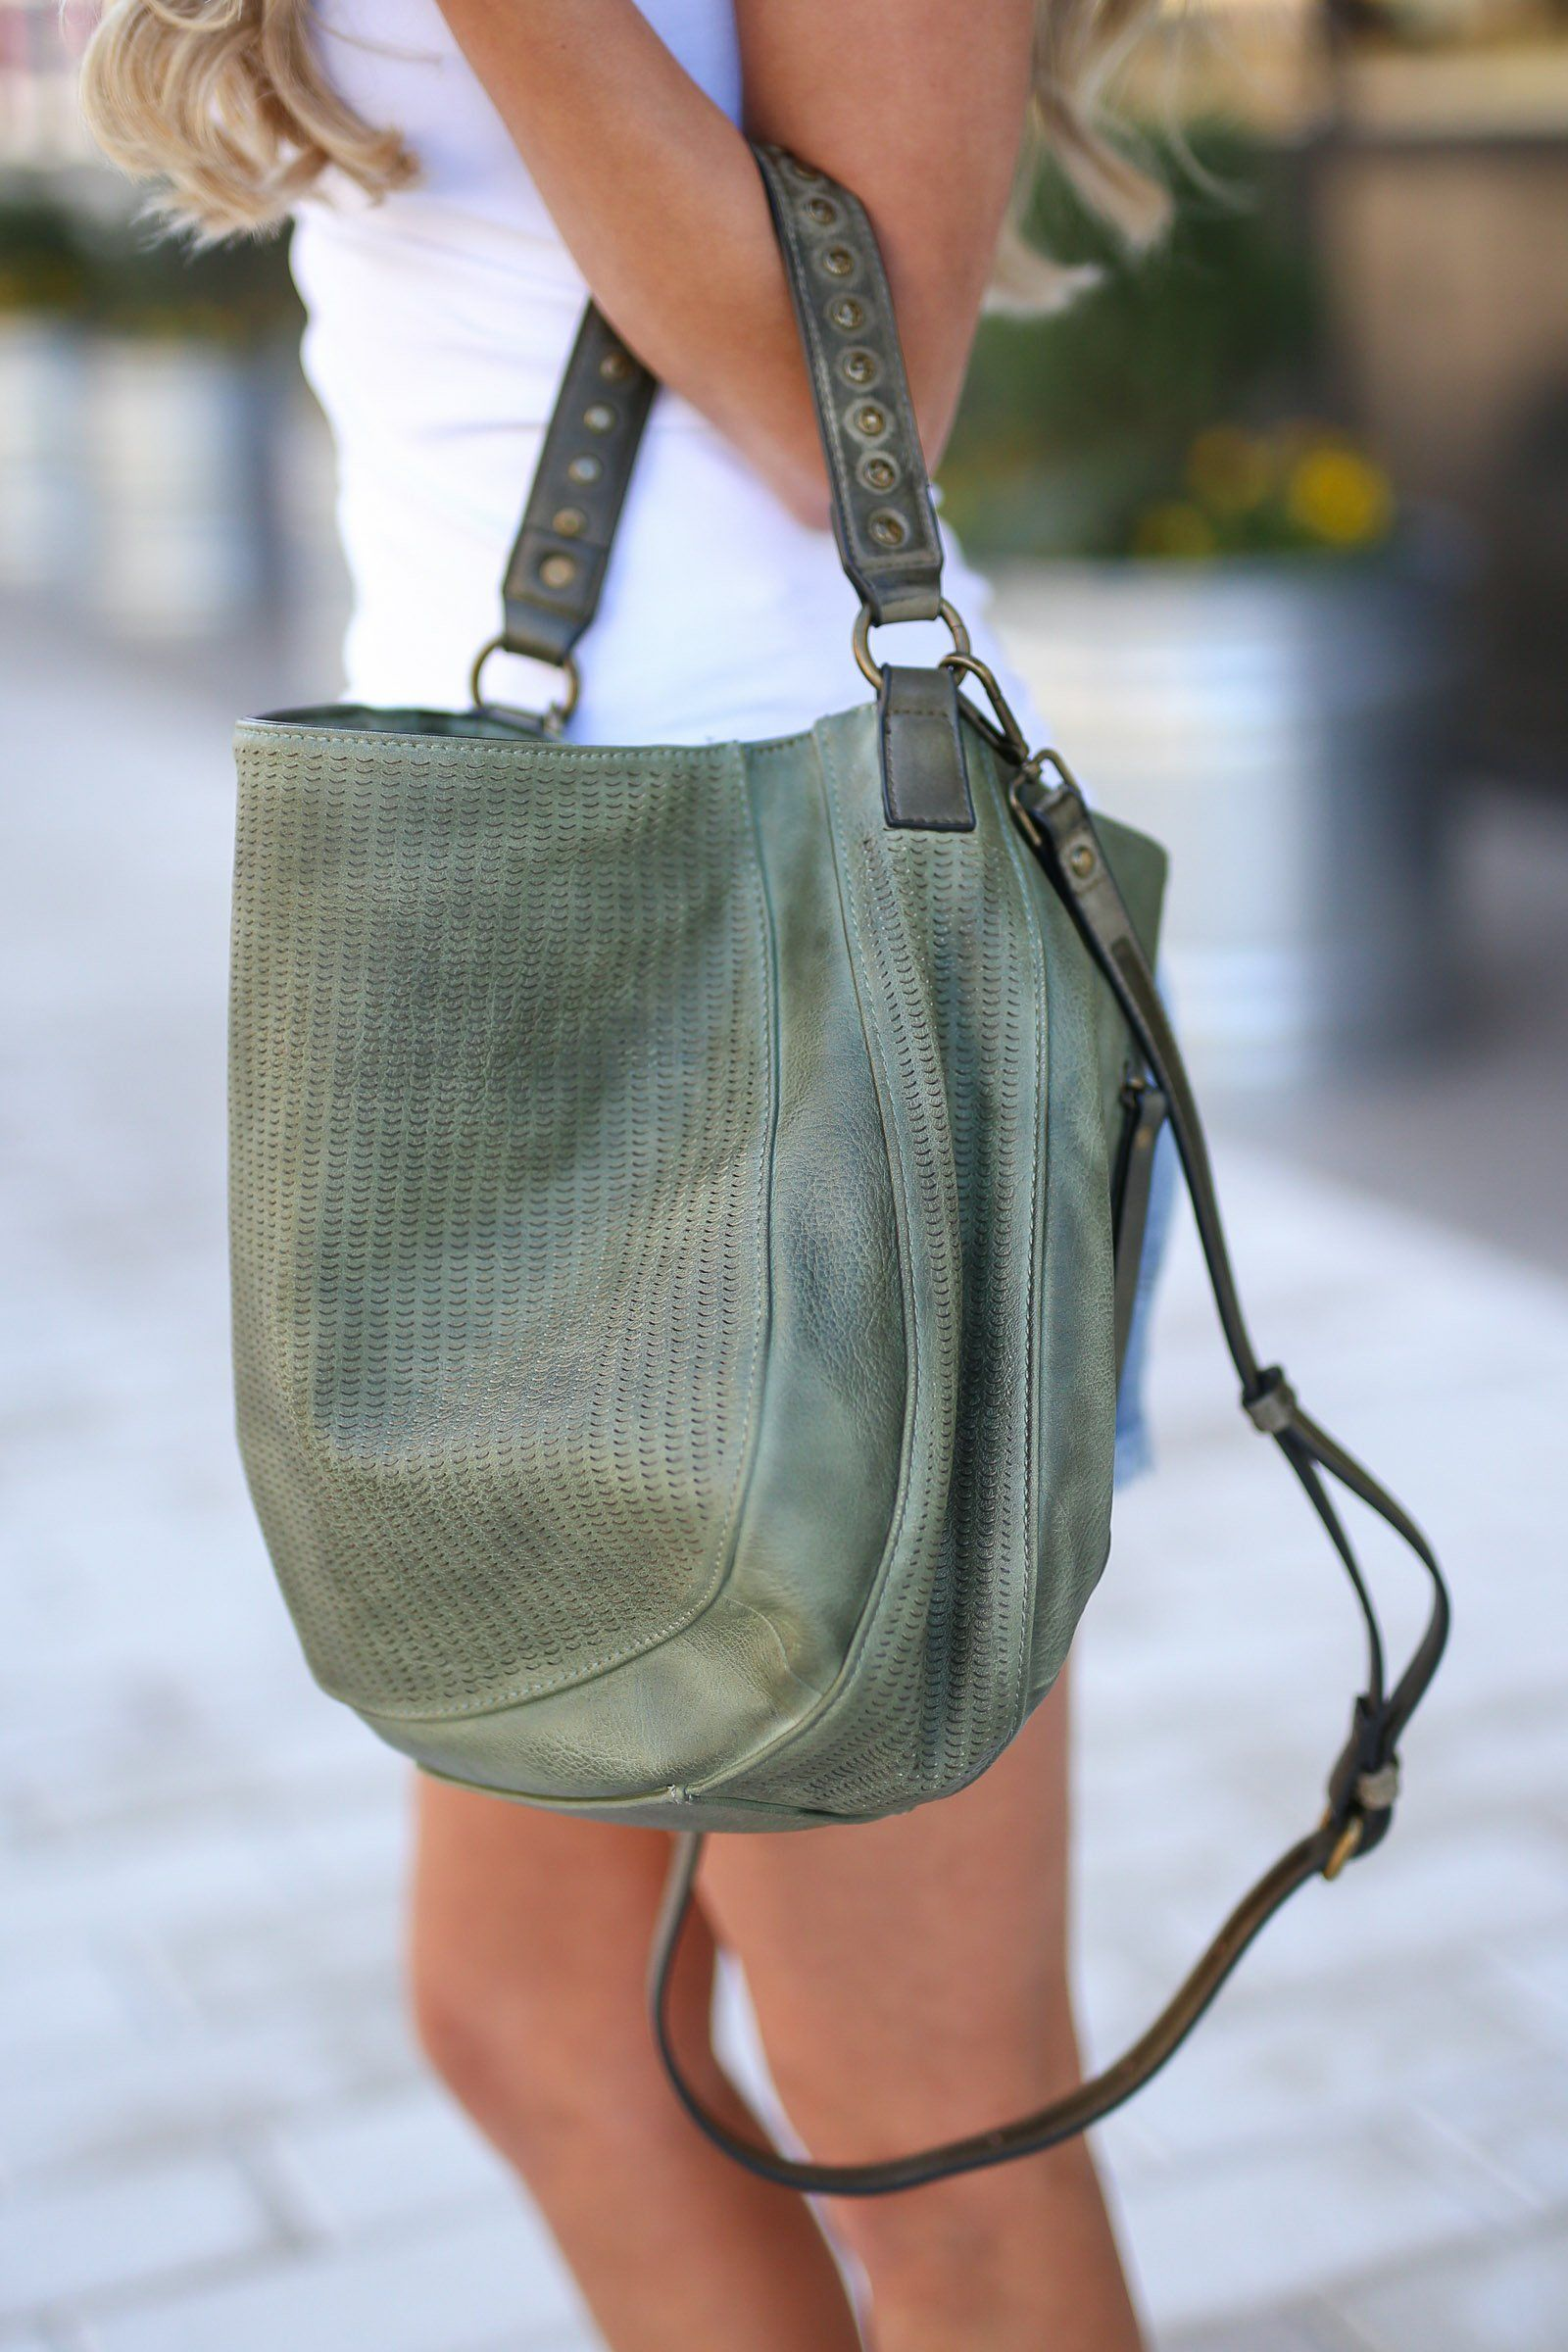 488a2c431dc086 Alessandra Purse - Olive | Products | Purses, Bags, Fashion